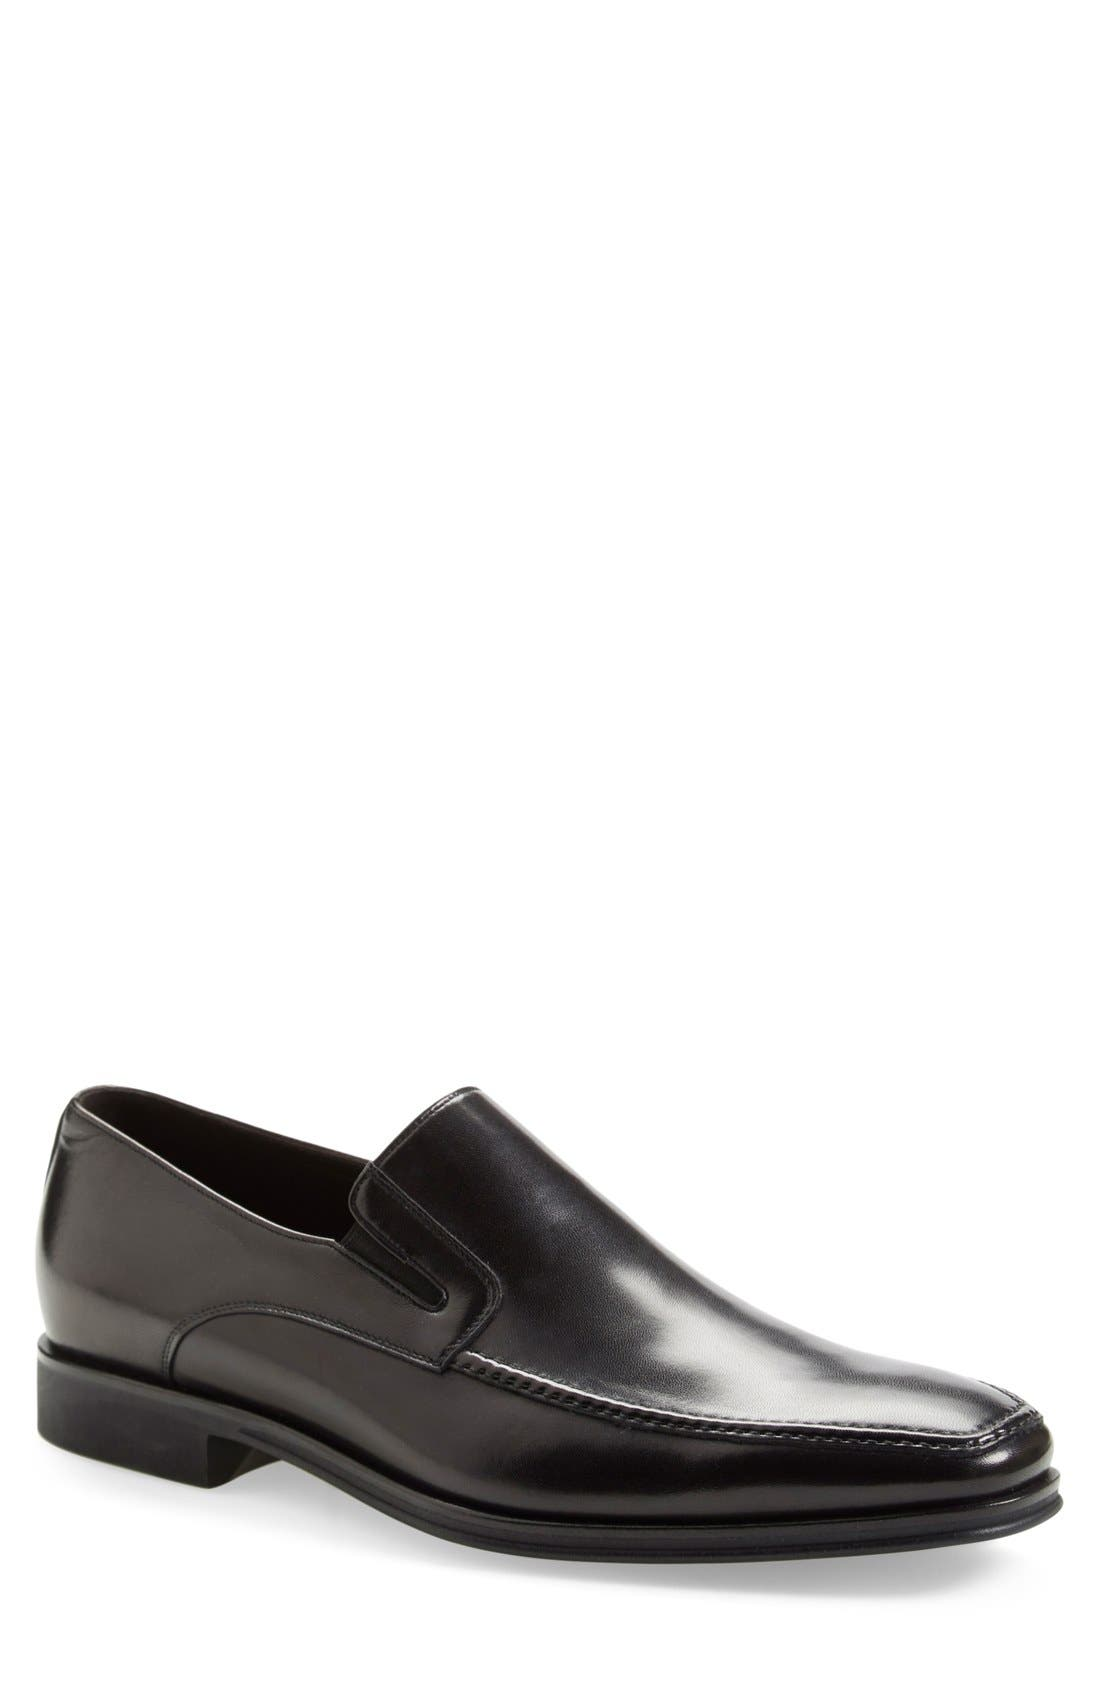 Lucca Nappa Leather Loafer,                         Main,                         color, BLACK